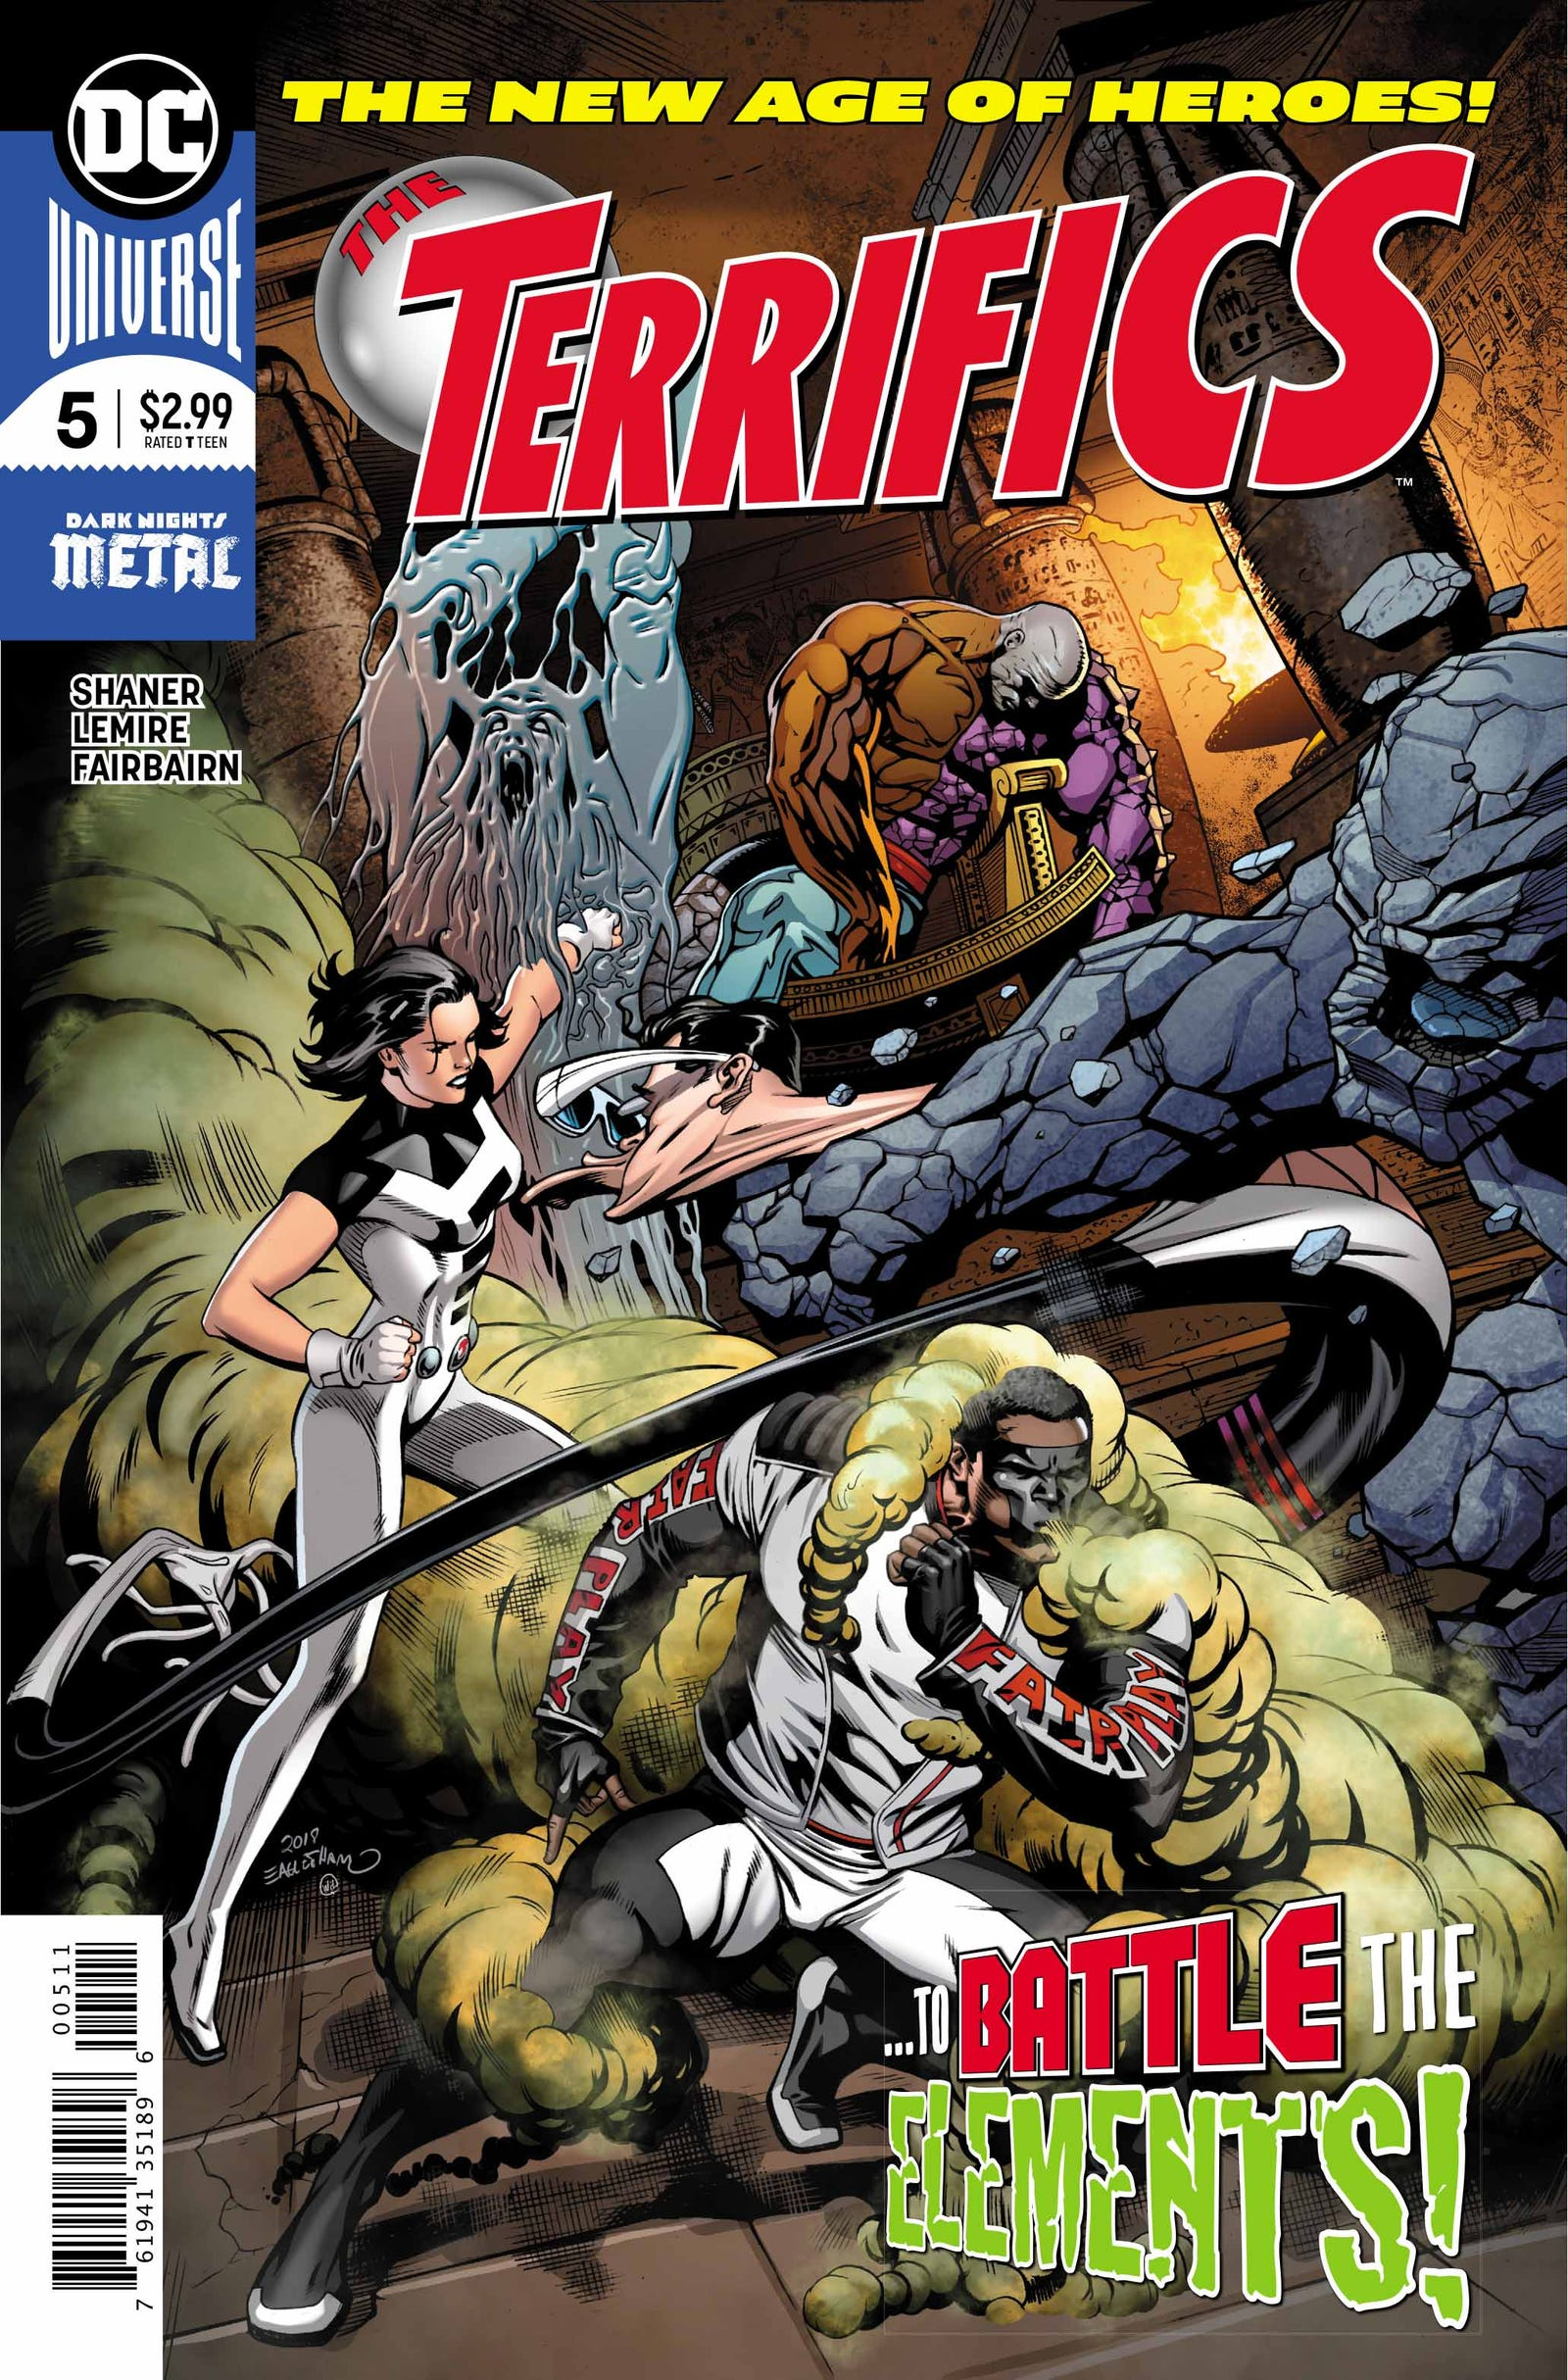 Cover by Dale Eaglesham and Wil Quintana